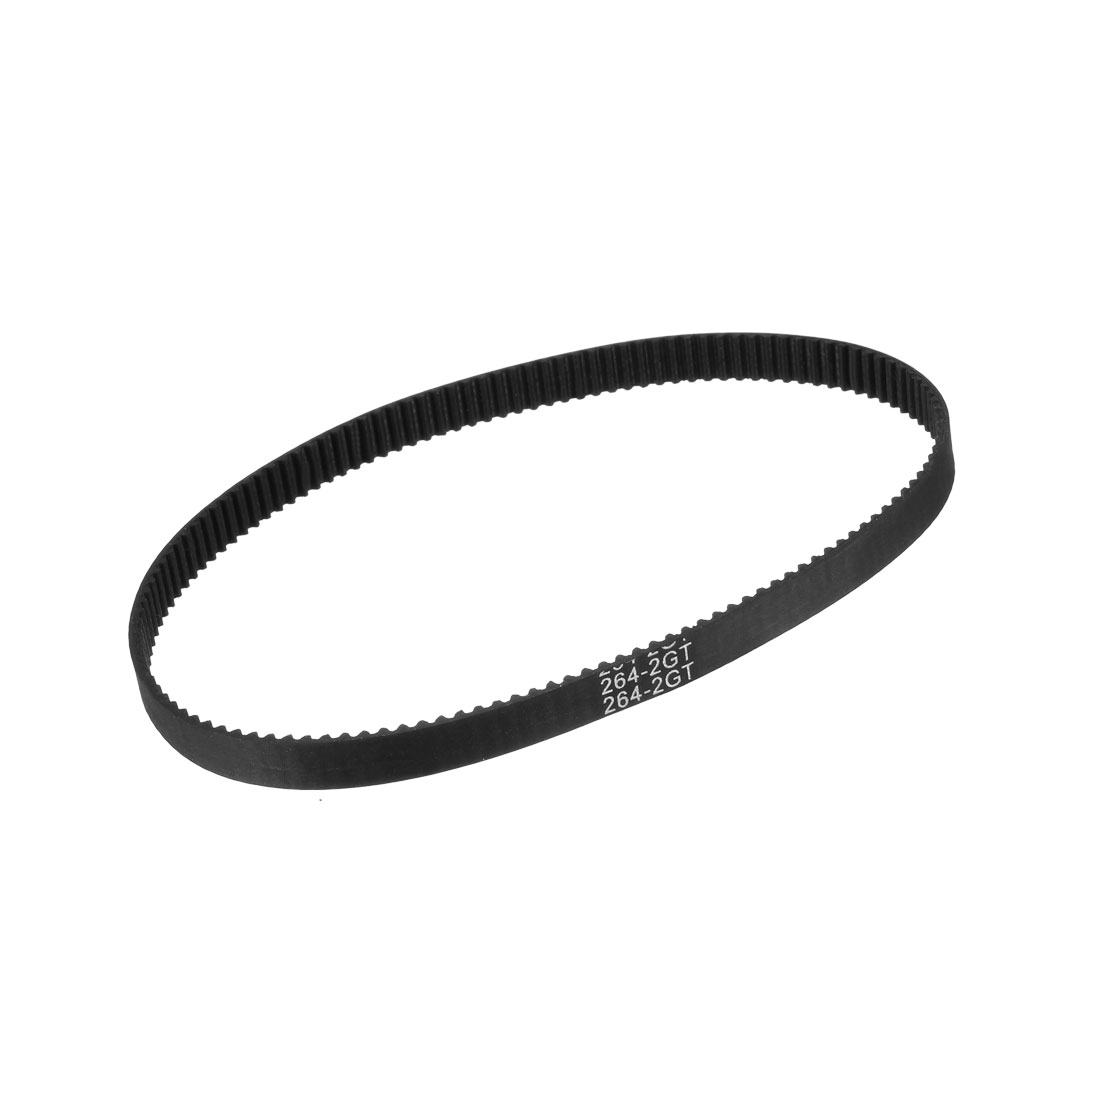 GT2 Timing Belt 264mm Closed Fit Synchronous Wheel for 3D Printer